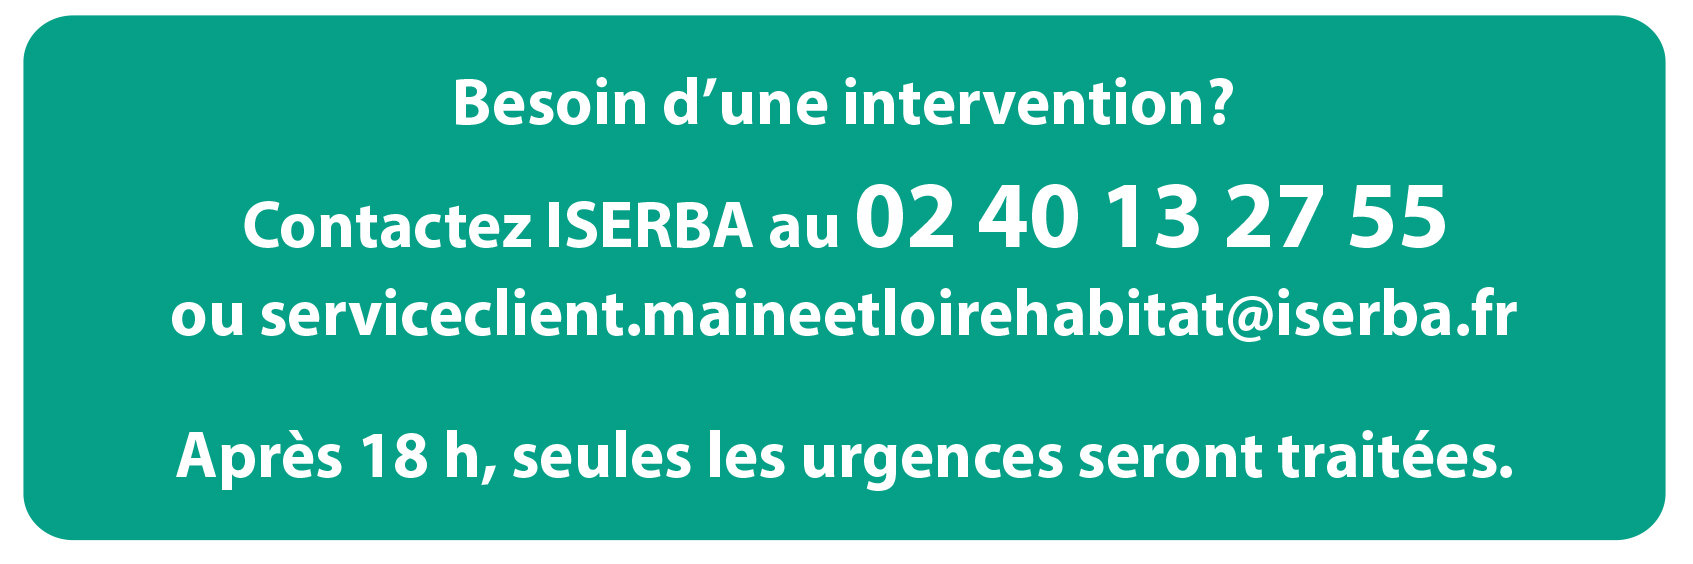 contrat multiservices ISERBA -2